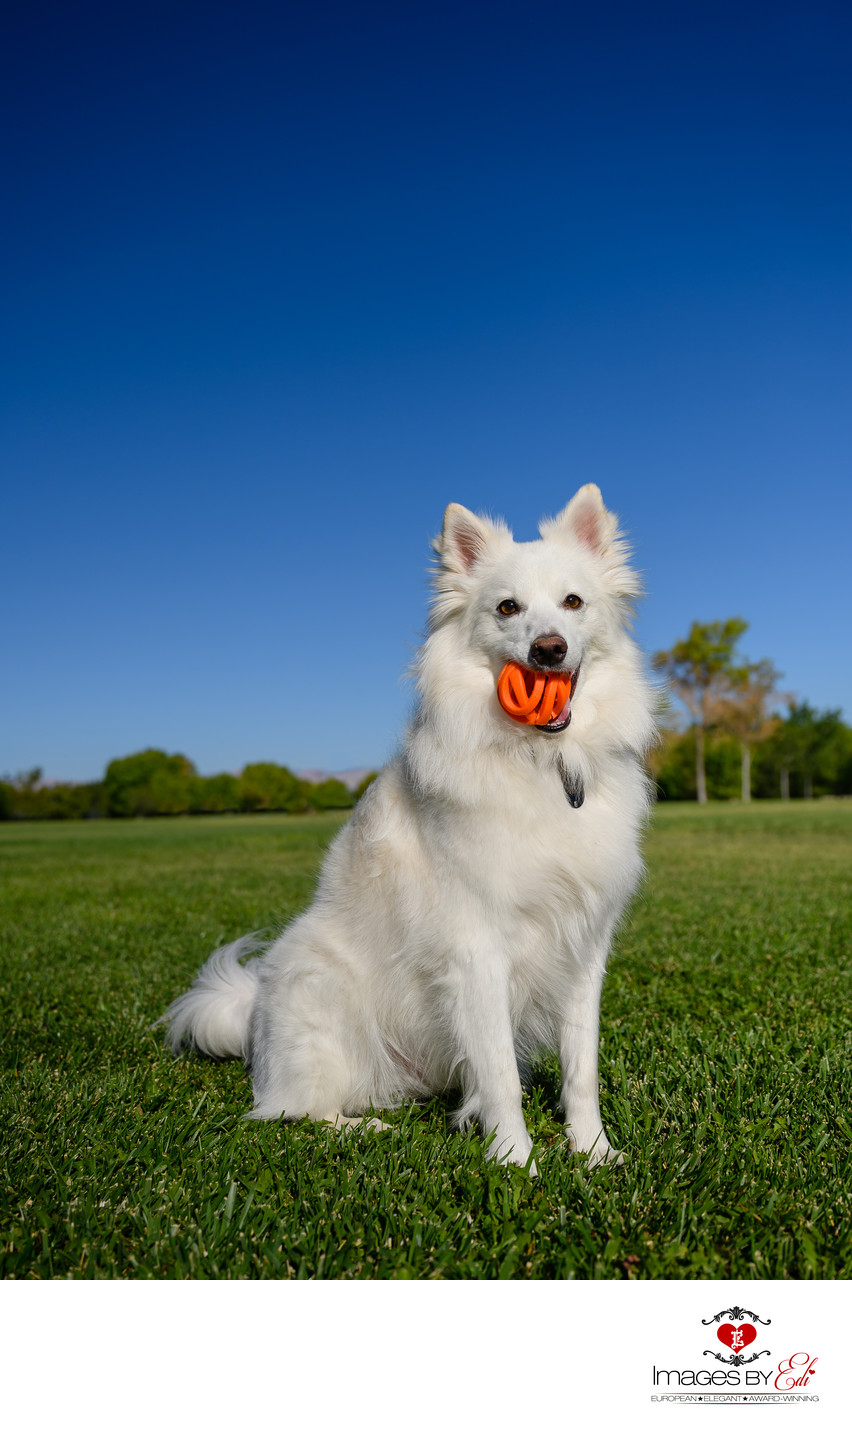 Las Vegas Pet Photographer | Pet photo of American Eskimo with his Toy| Las Vegas Pet Photography | Images By EDI